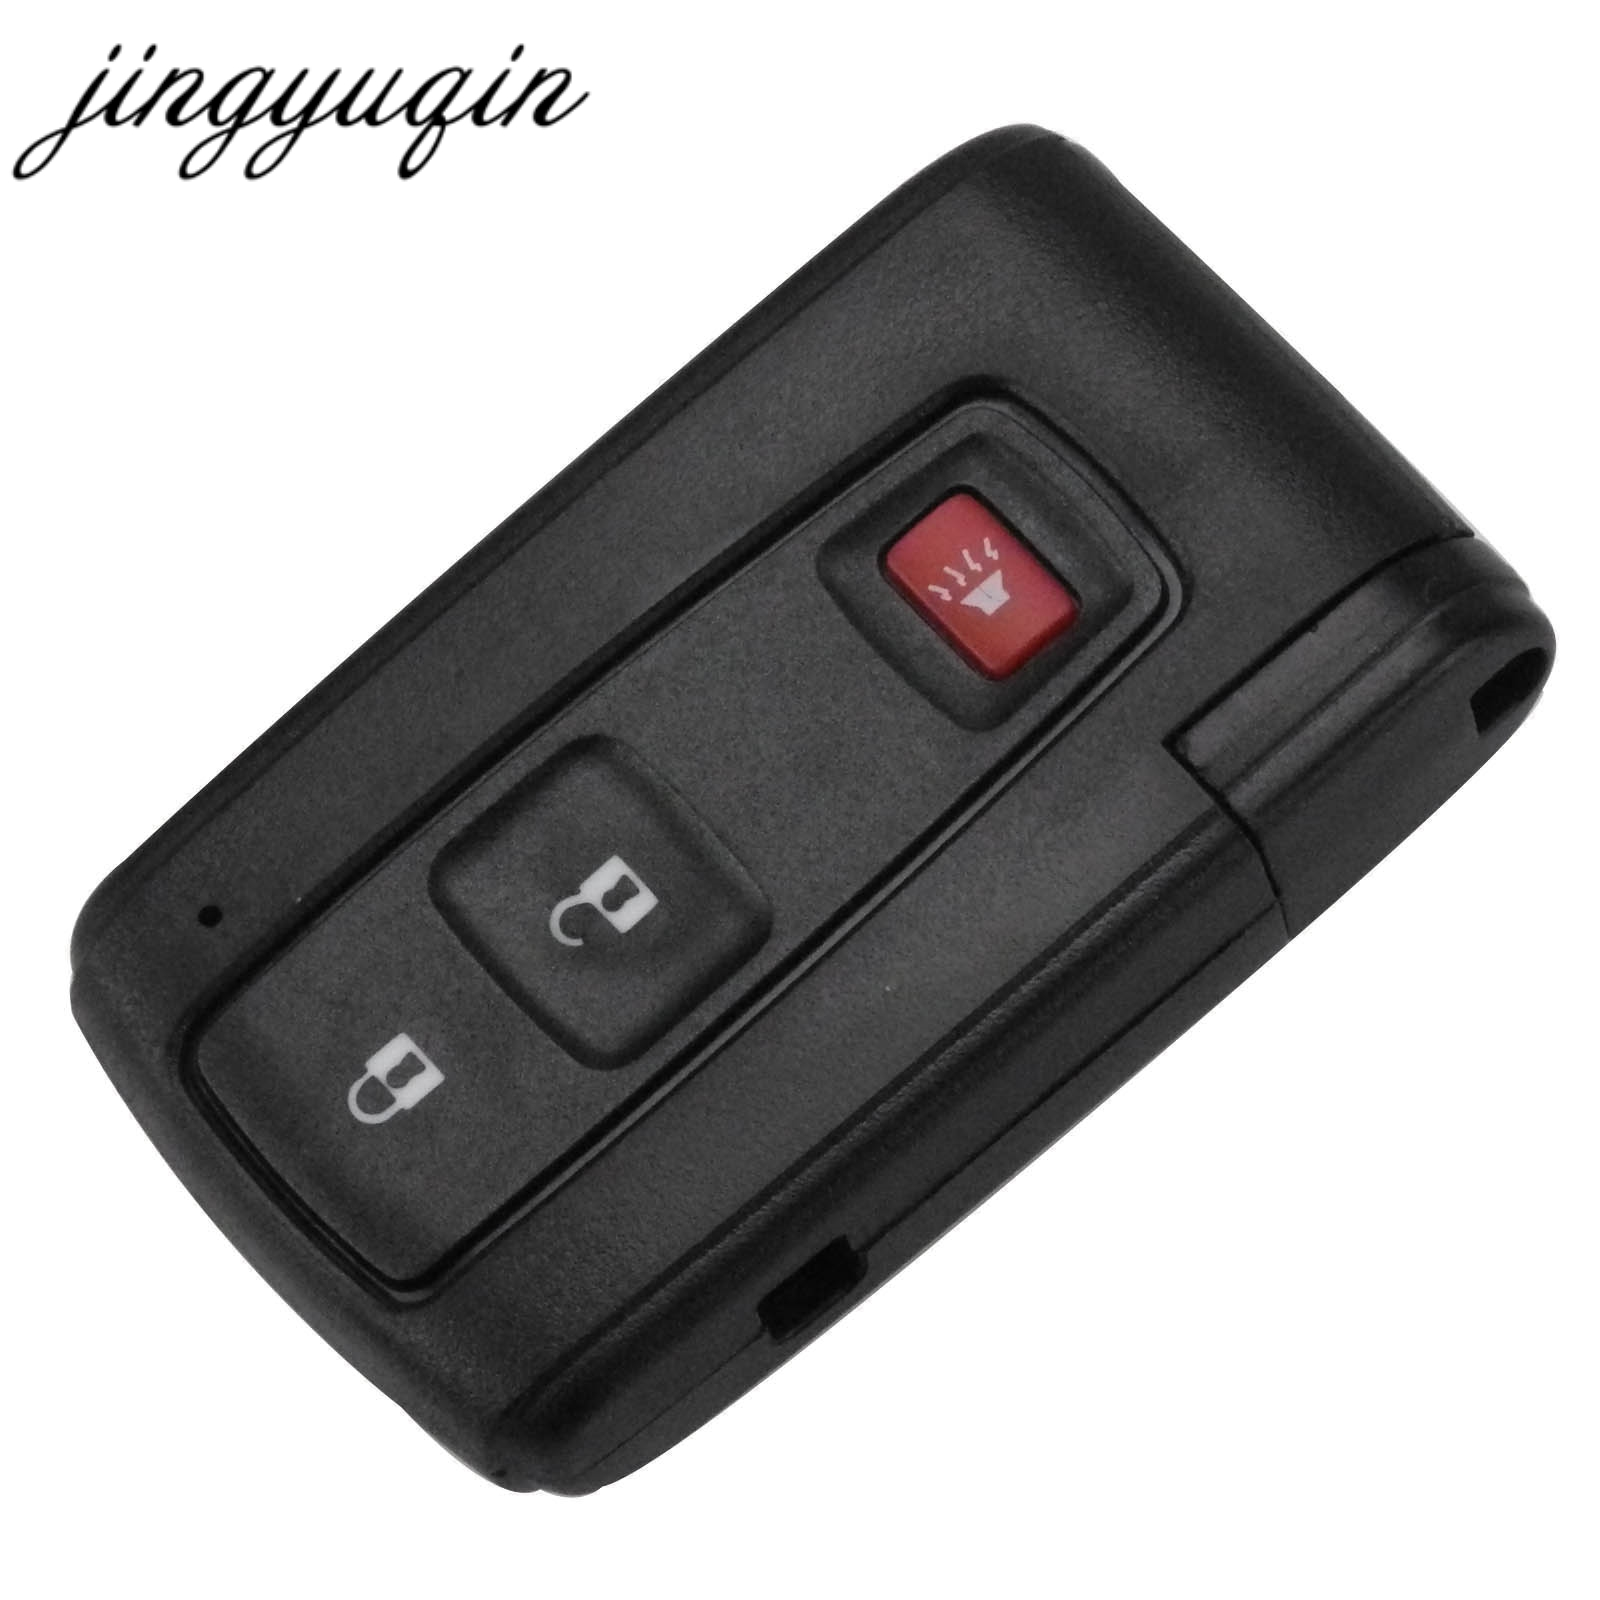 все цены на jingyuqin 2+1 3 Buttons Keyless Smart Remote Key Shell Case Fob For Toyota Prius 2004-2009 Toy43 Blade Replacement онлайн